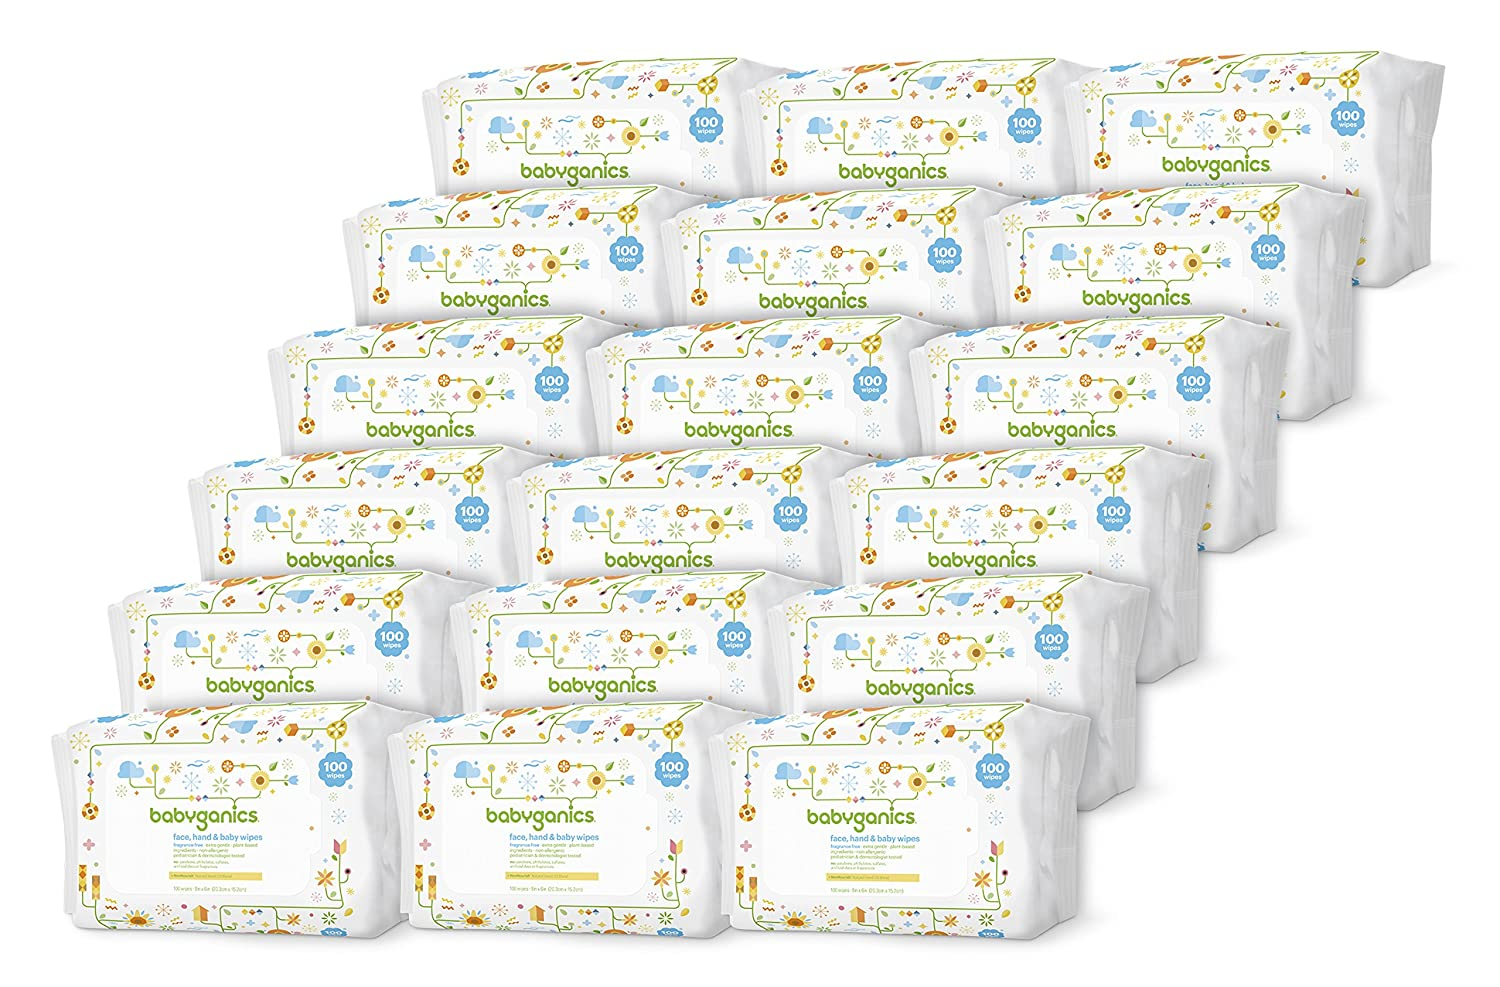 Babyganics Face, Hand and Baby Wipes, Fragrance Free, 400-Count (Contains Four 100-Count Packs), Packaging May Vary 1341